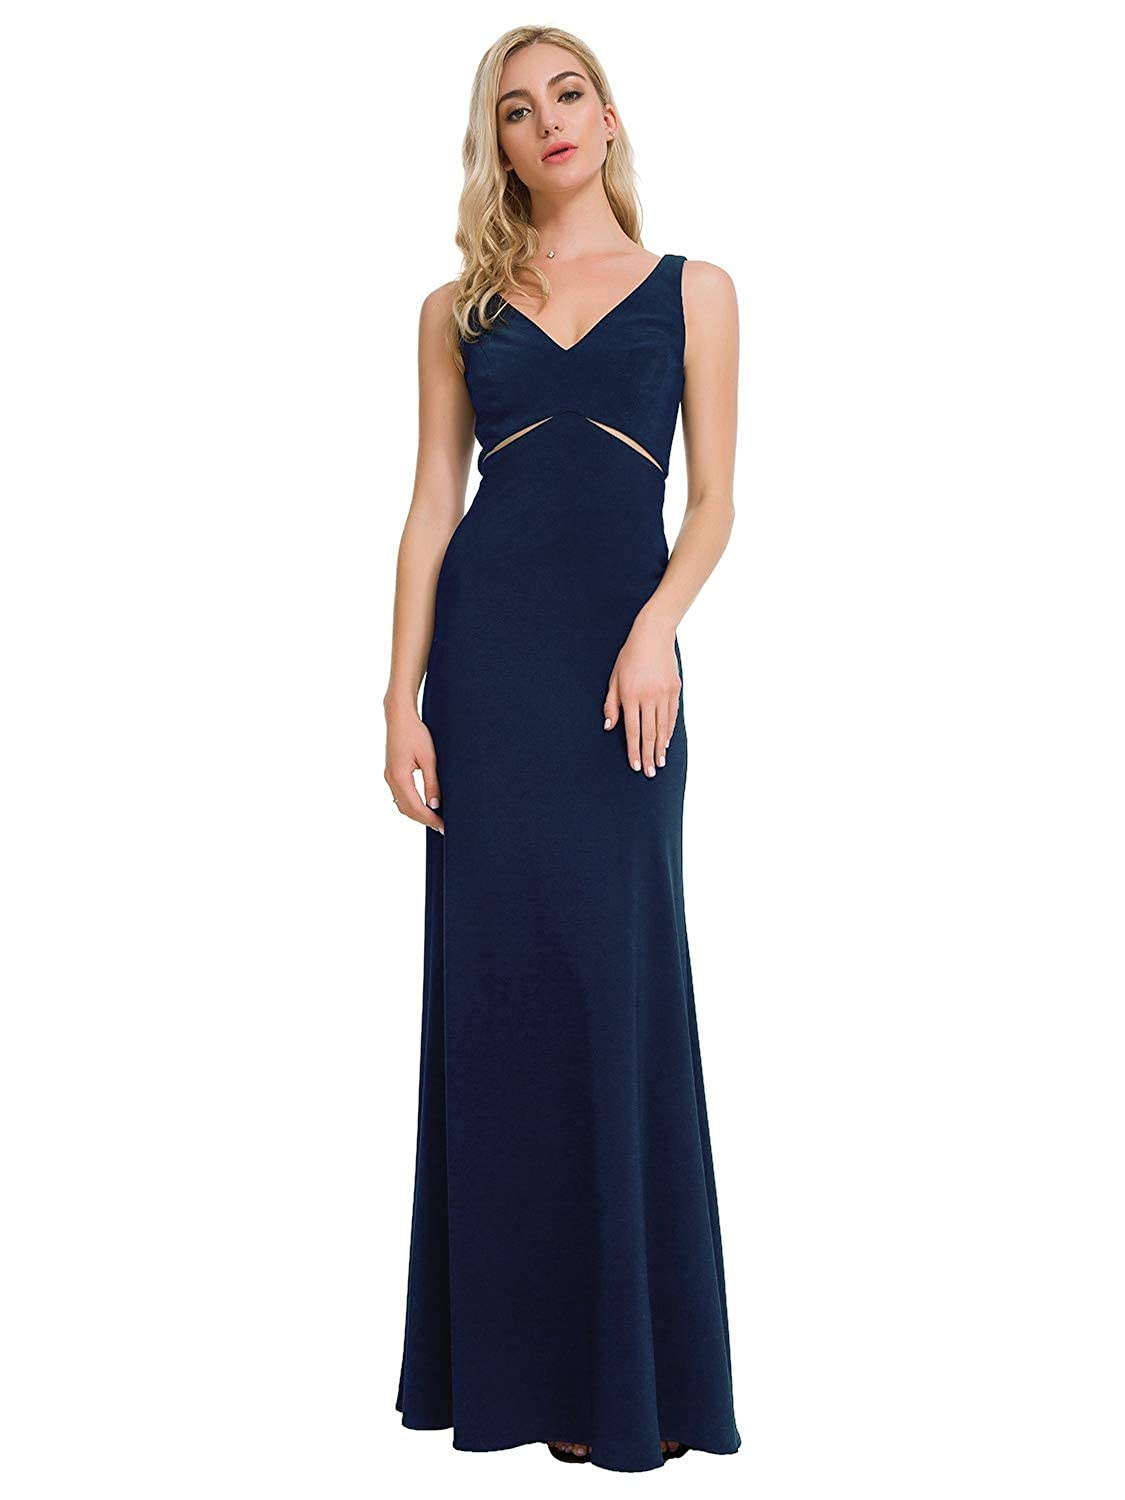 Dark Navy Alicepub VNeck Evening Gowns Women Long Formal Dresses for Party Prom Speacial Occasions